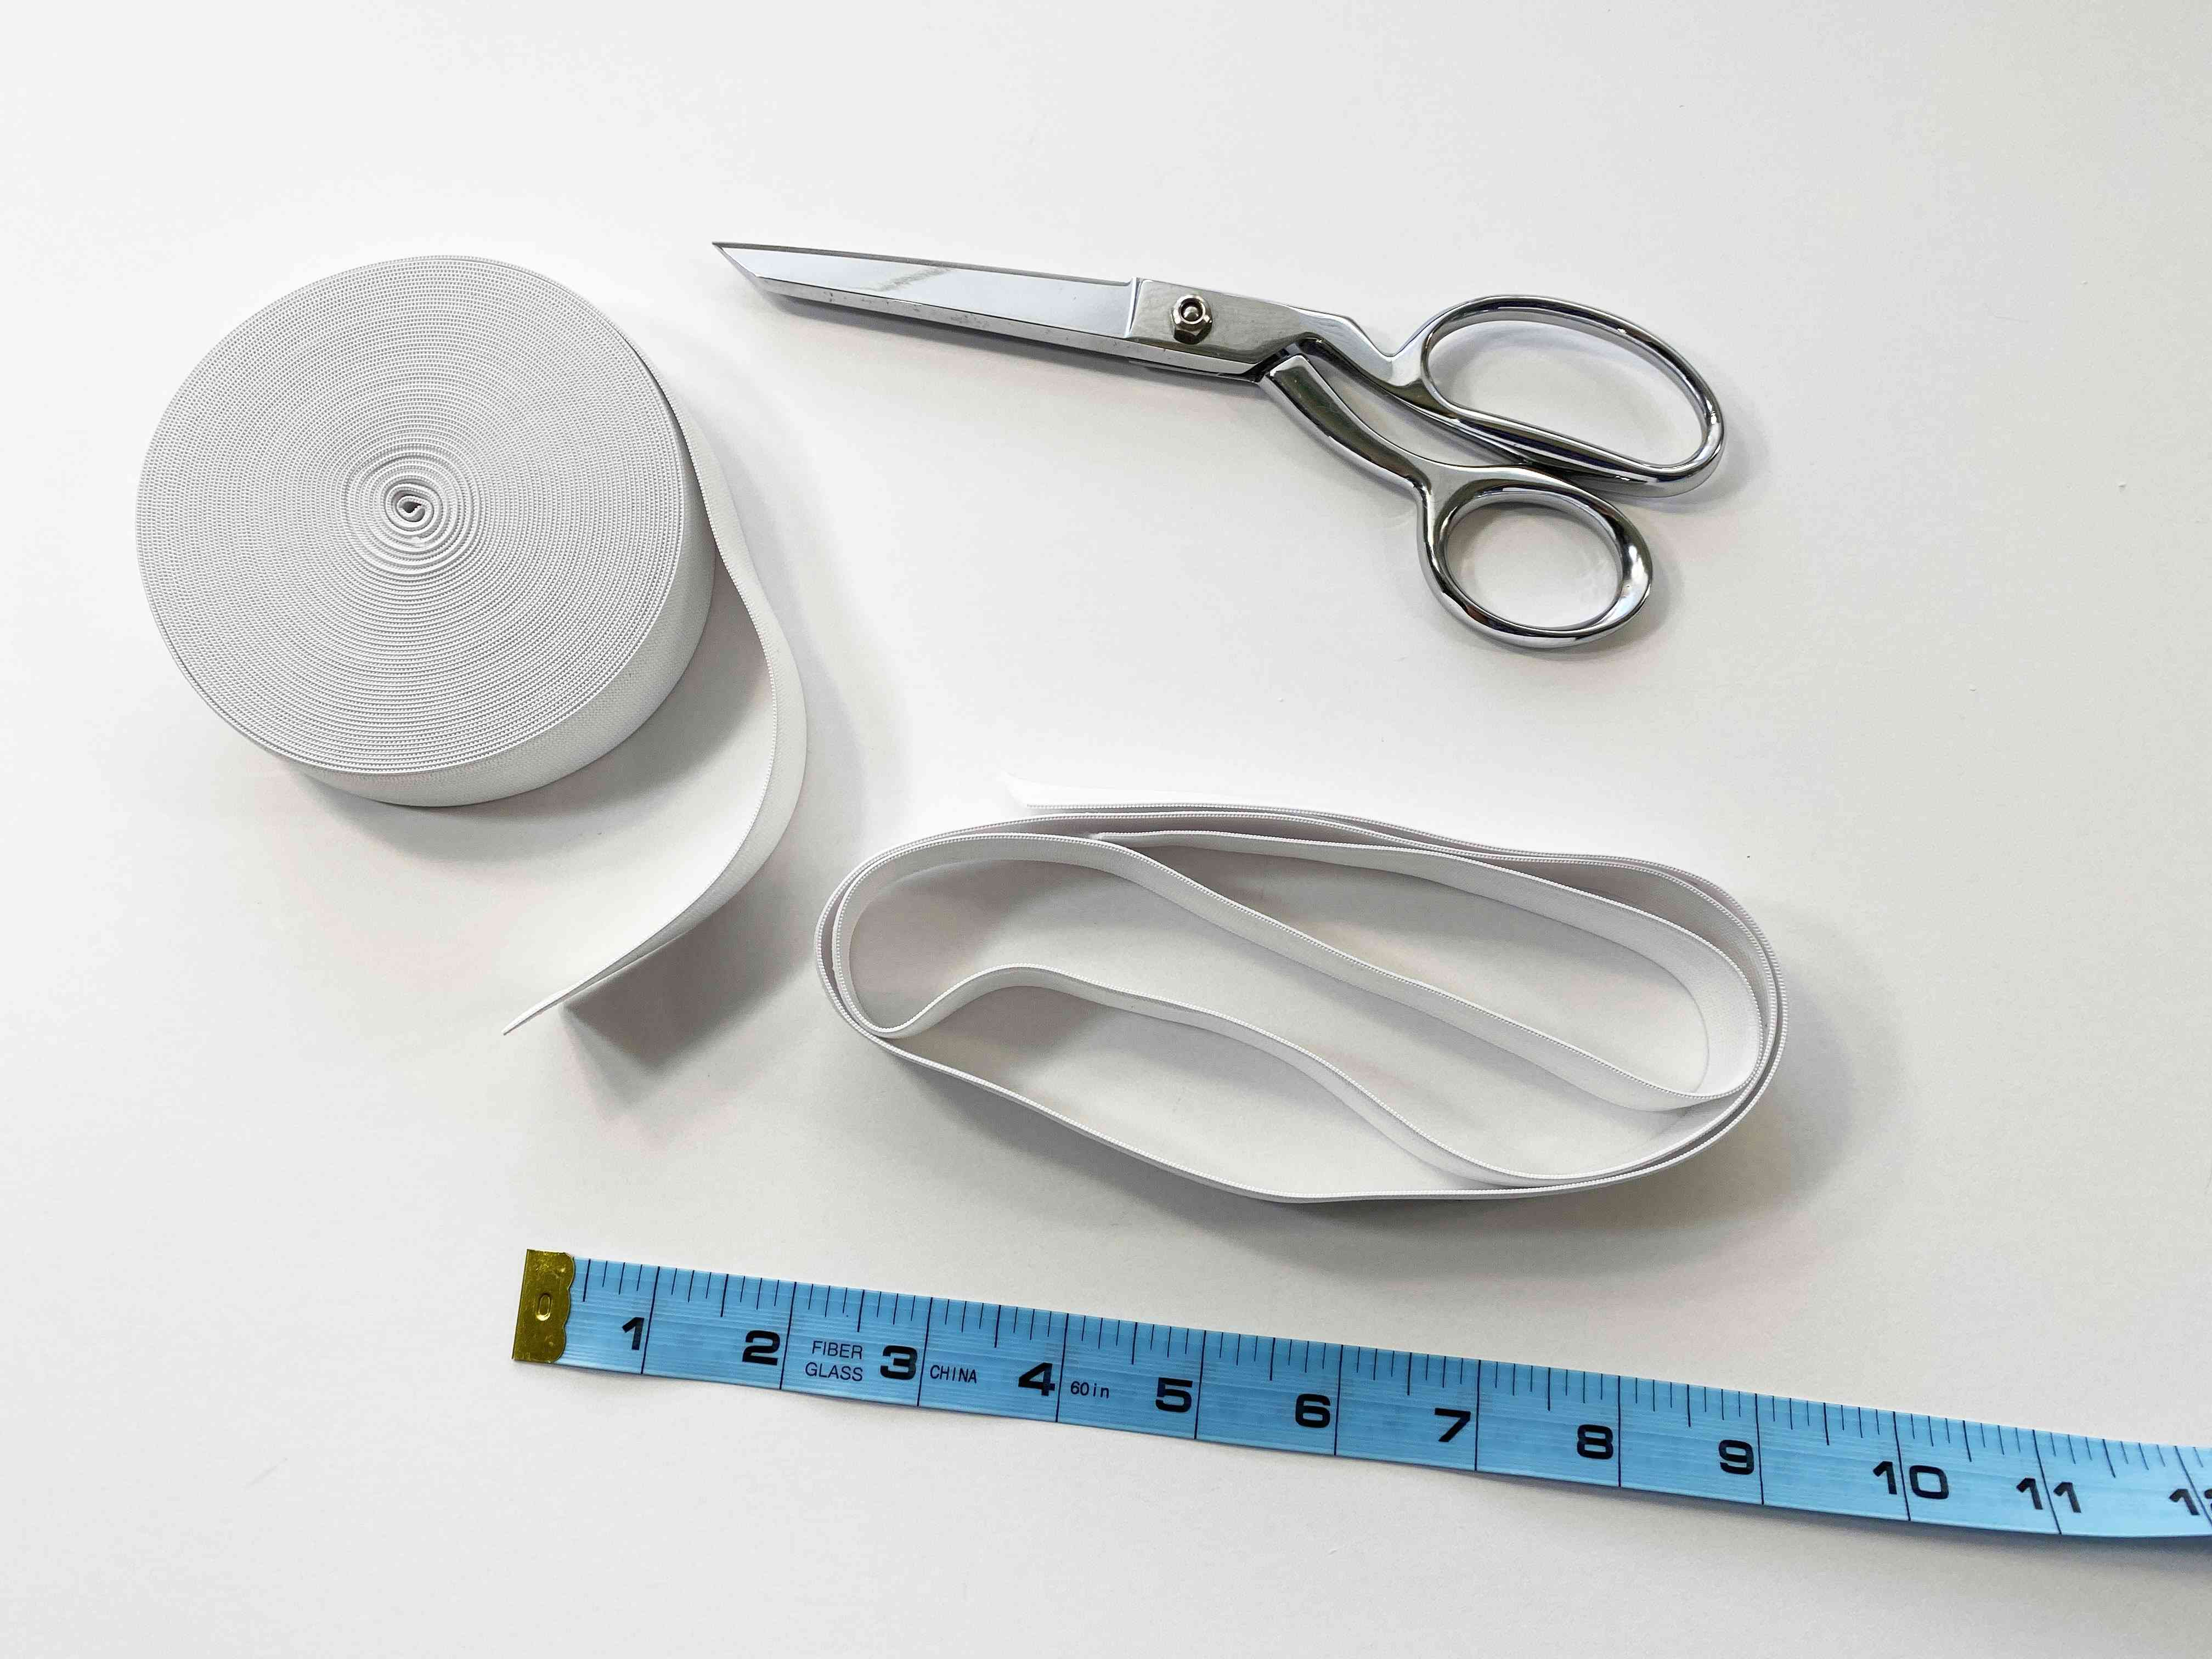 Scissors, elastic, and a measuring tape on a table